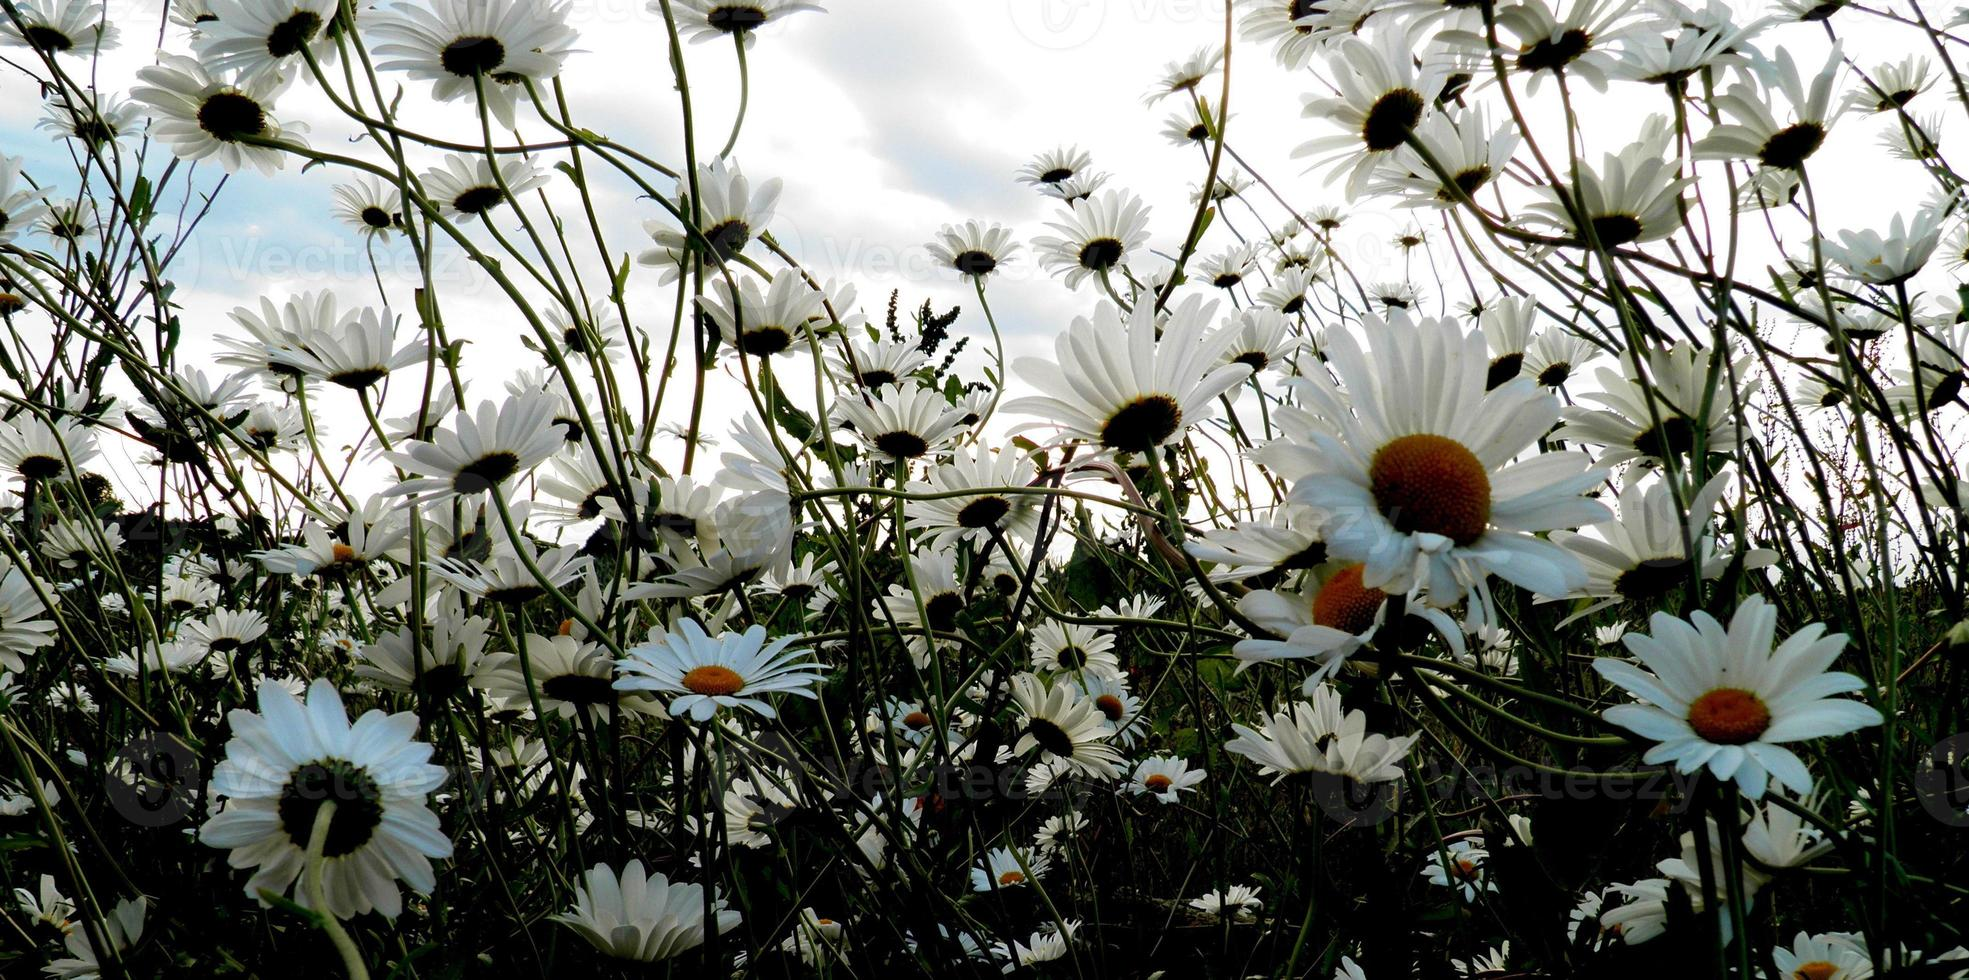 Daisy and more Daisies photo